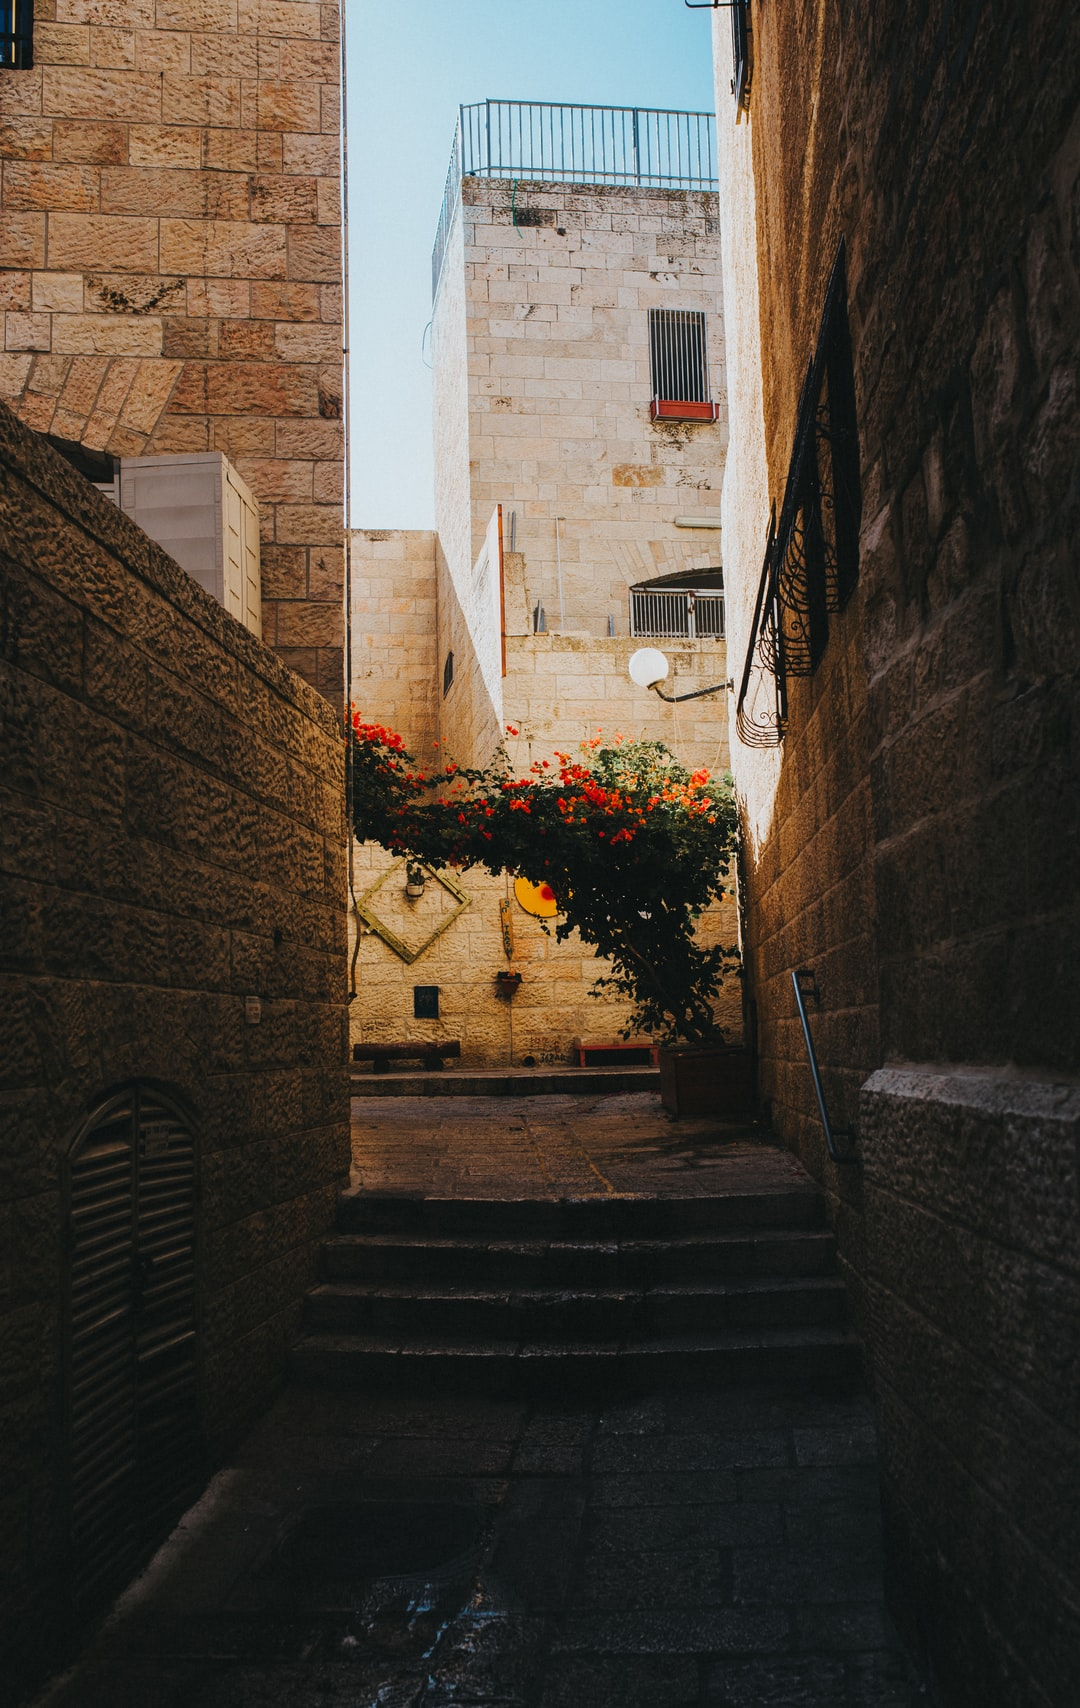 Between ancient structures in an alley breaths light unto a blooming plant.